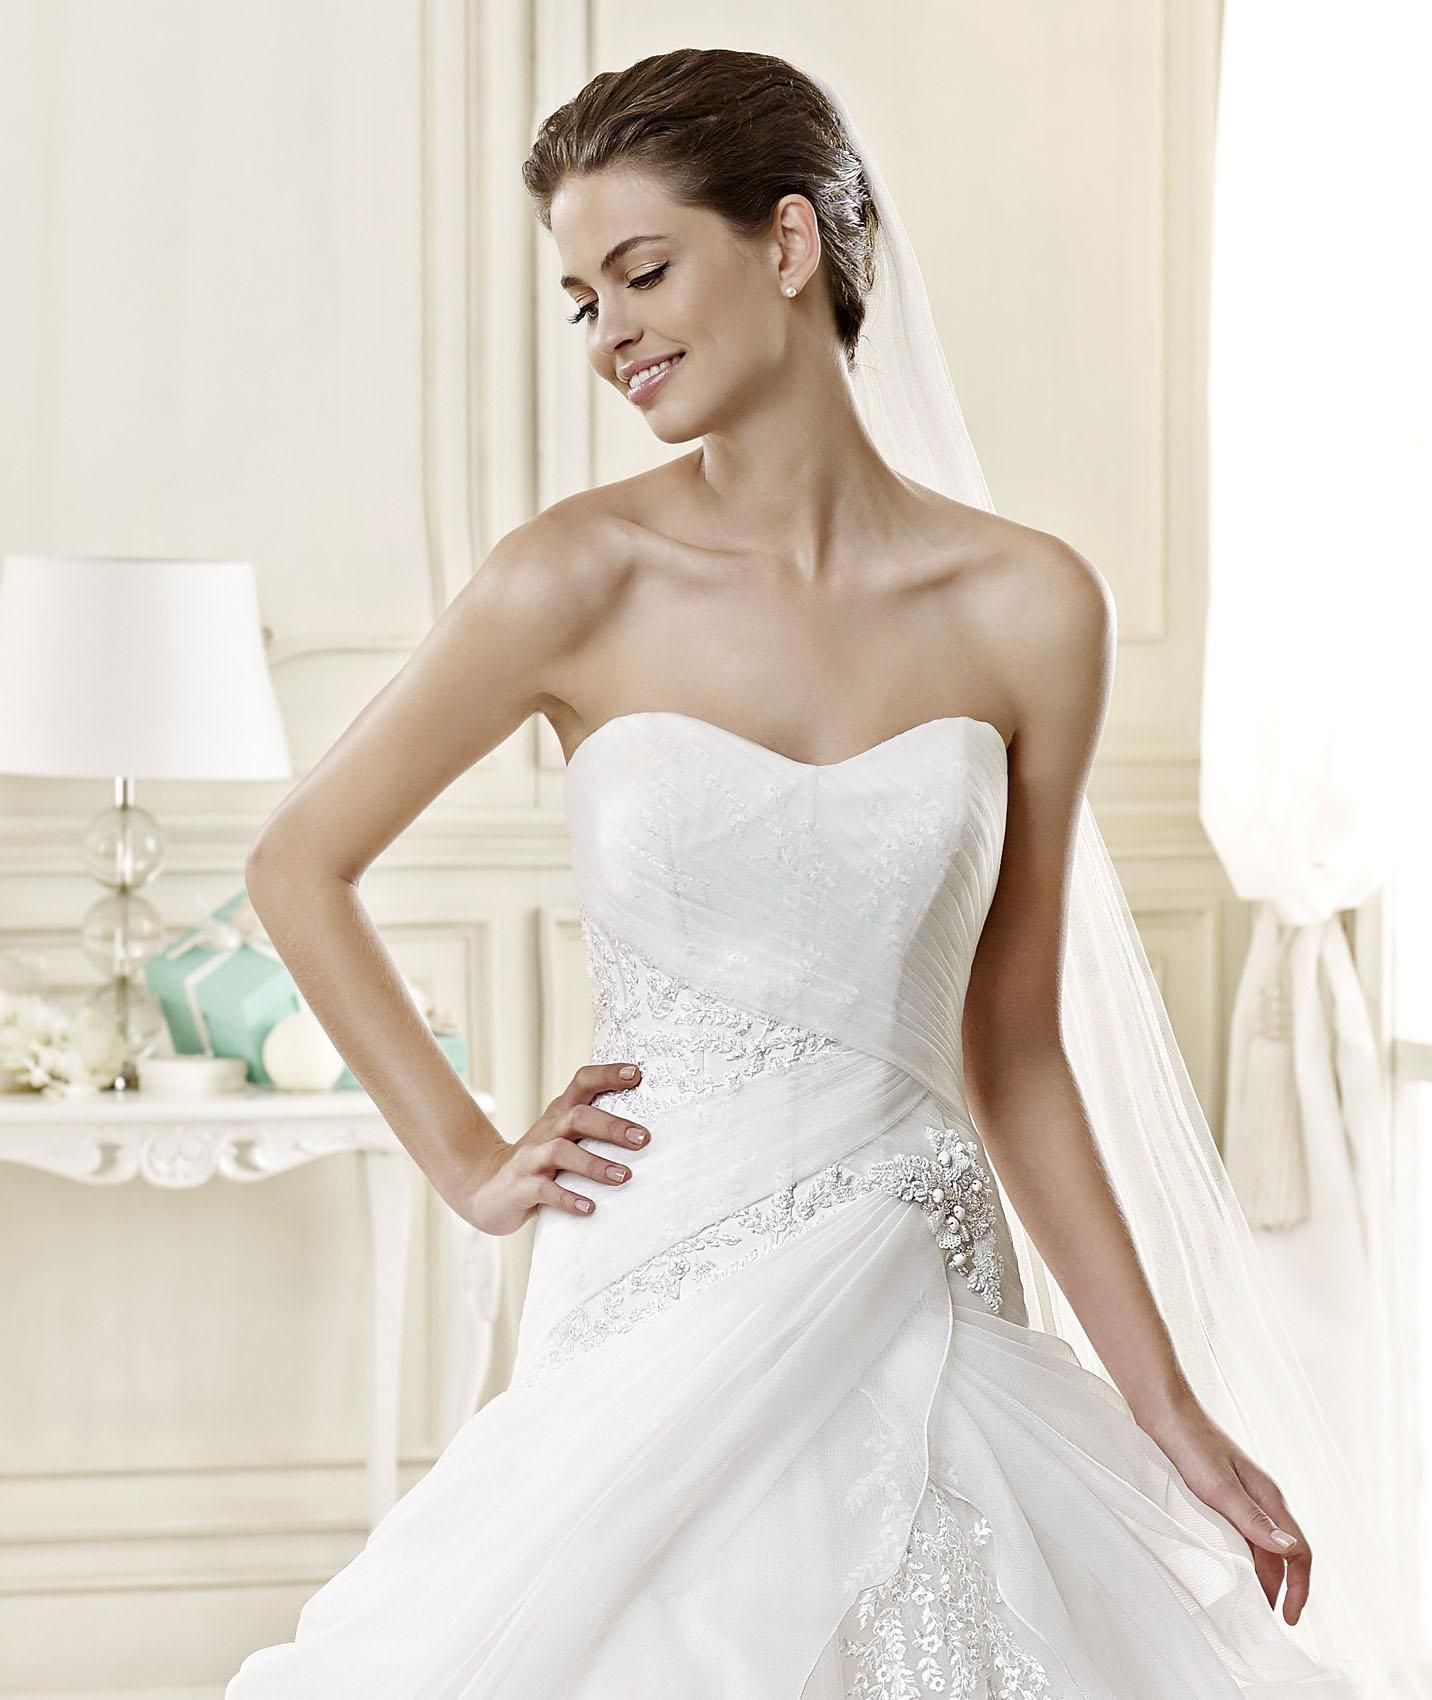 Wedding Dress Nicole DAPPHIRE NIAB15097IV 2015